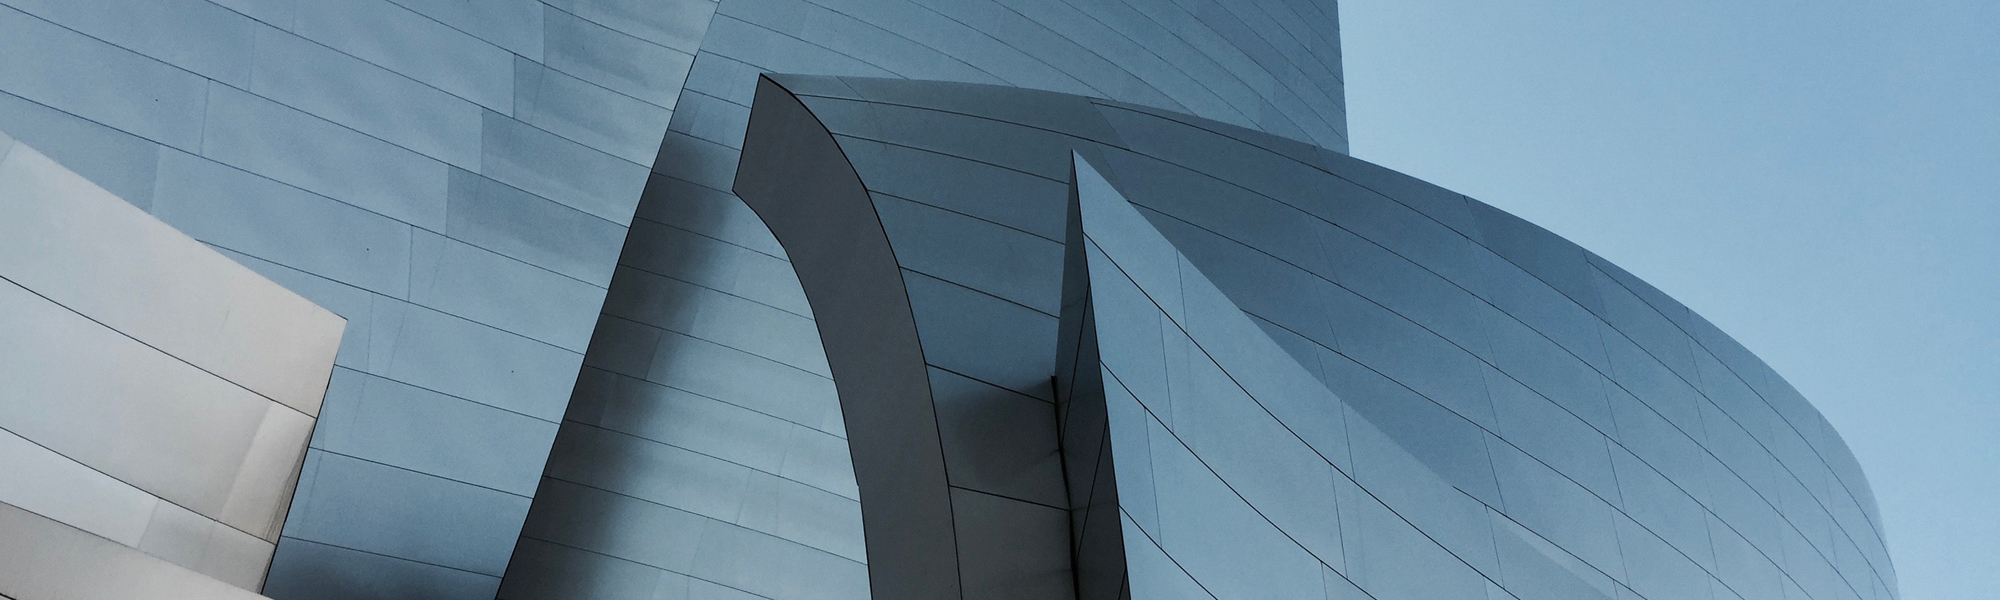 Walt Disney Concert Hall, designed by Frank Gehry